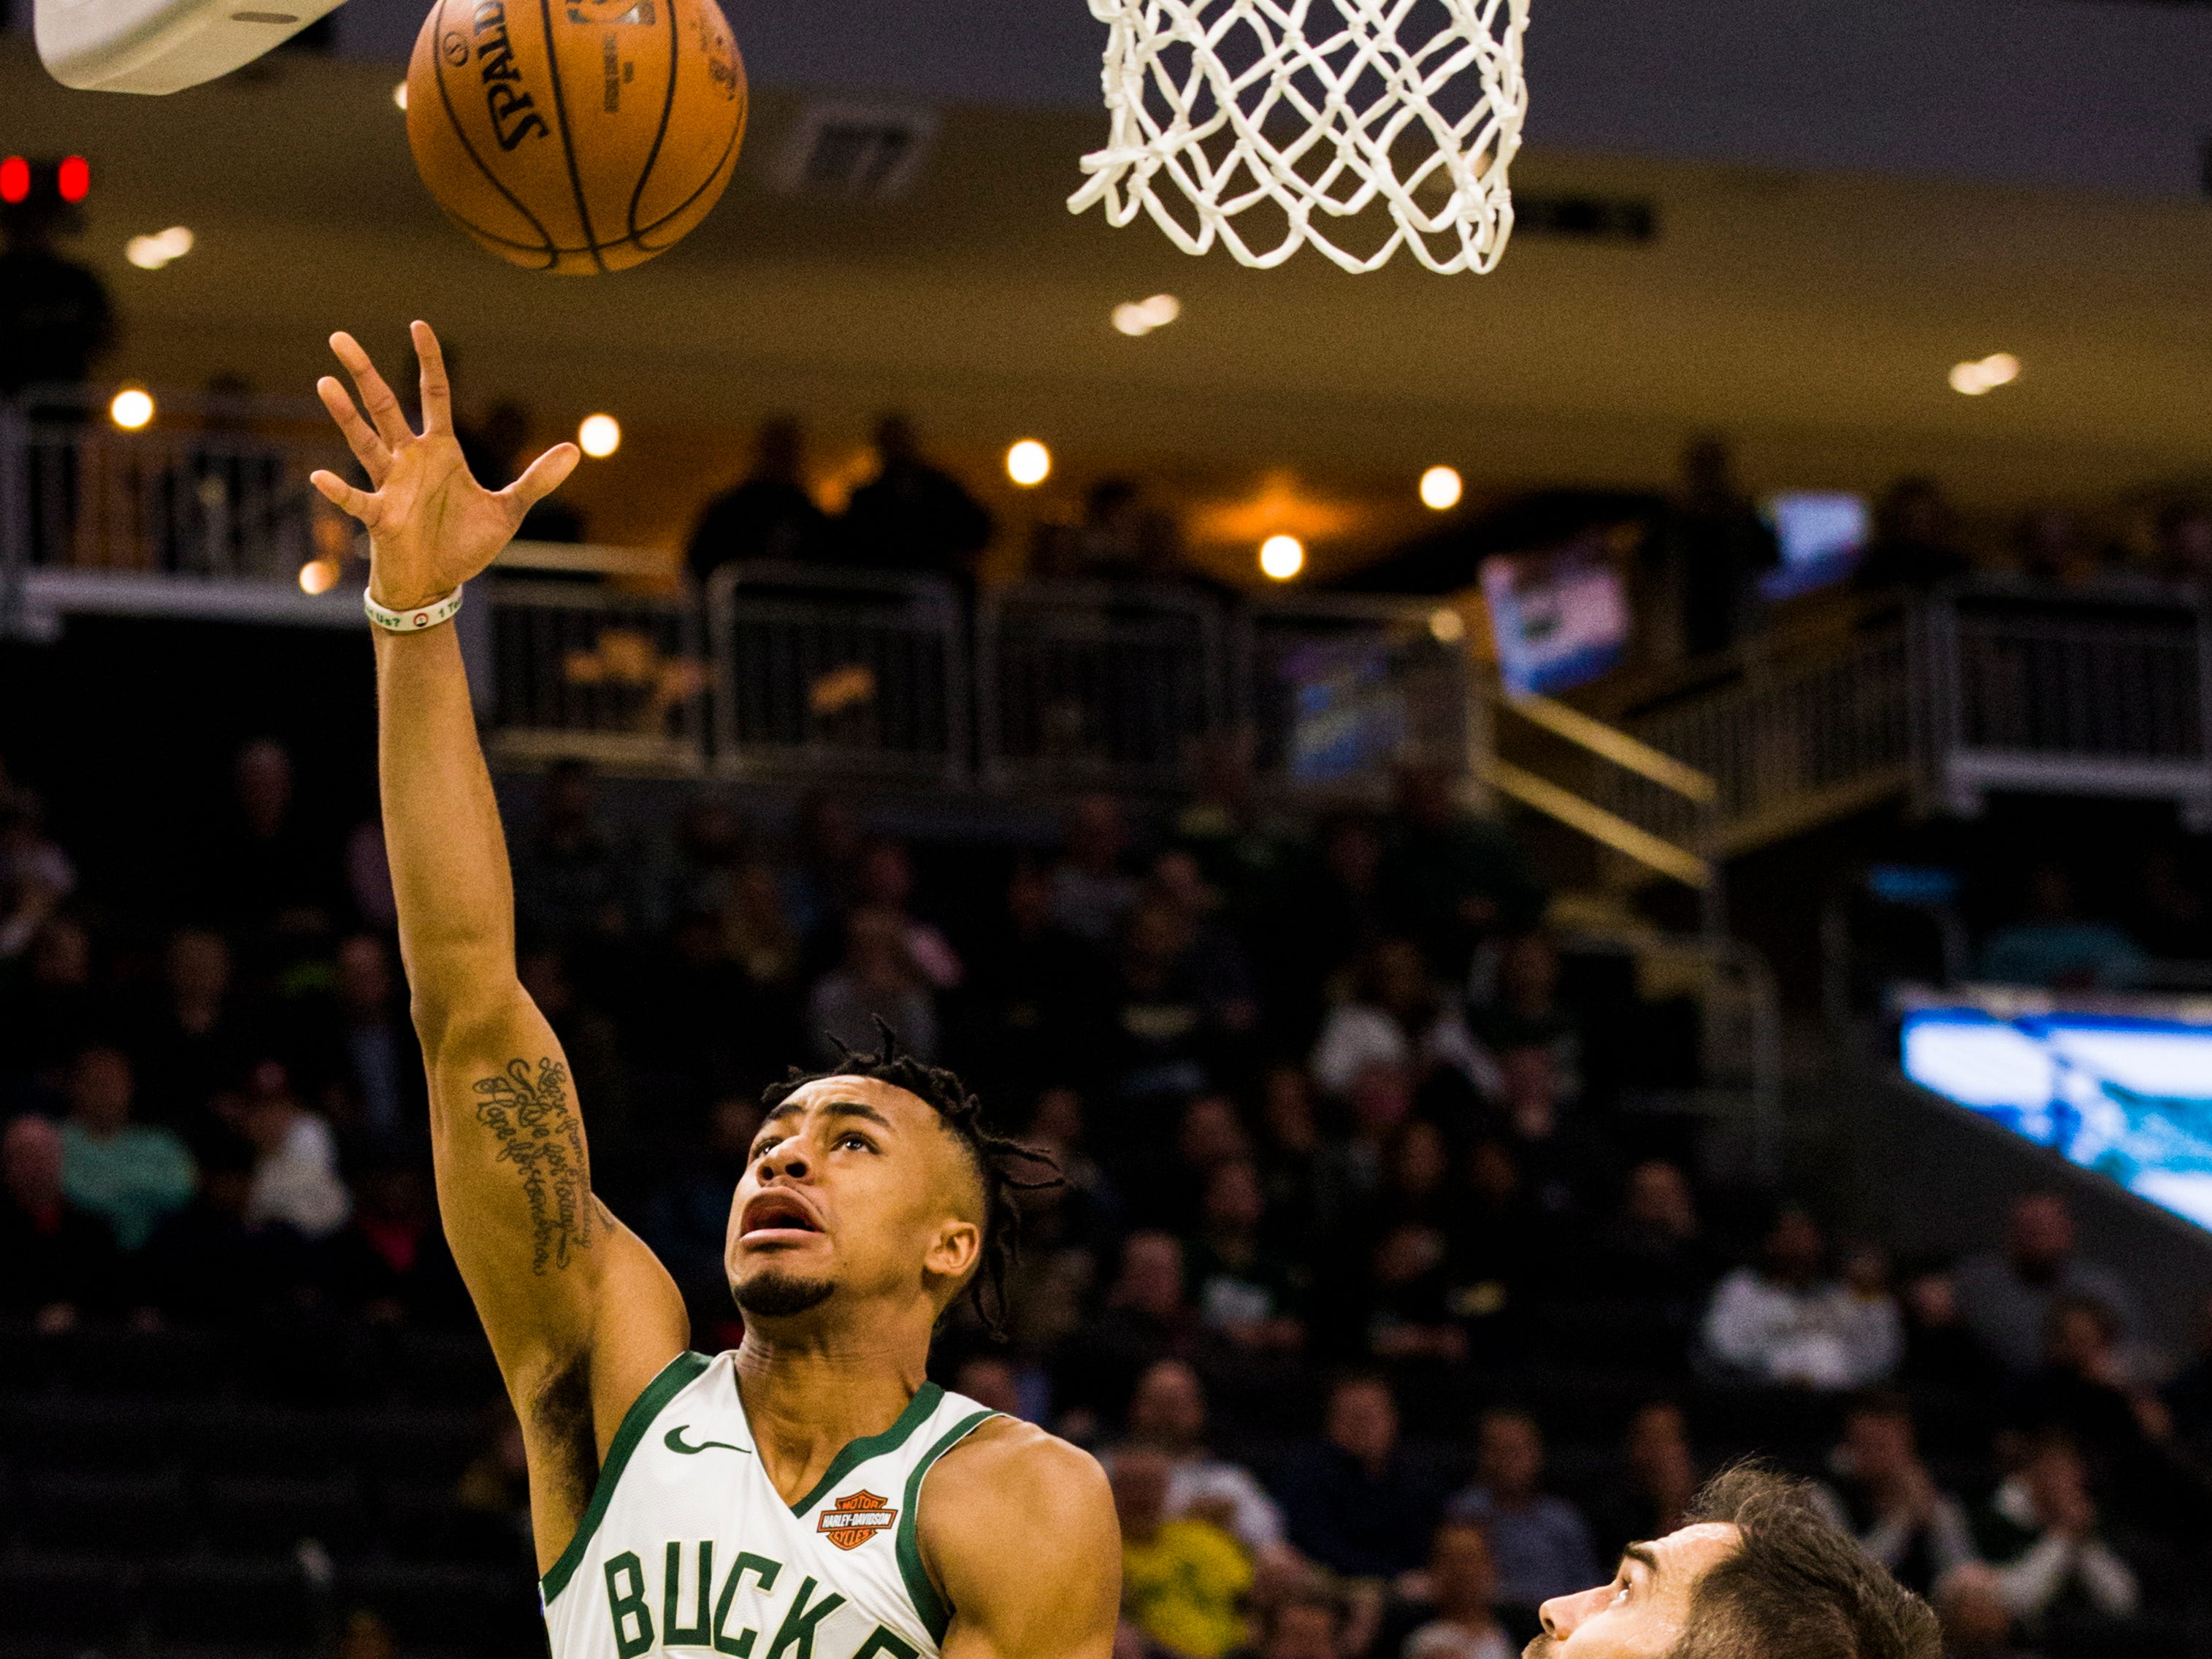 Jaylen Morris of the Bucks gets to the hoop for an easy basket in the fourth quarter during the blowout victory over the Pistons on Wednesday night.